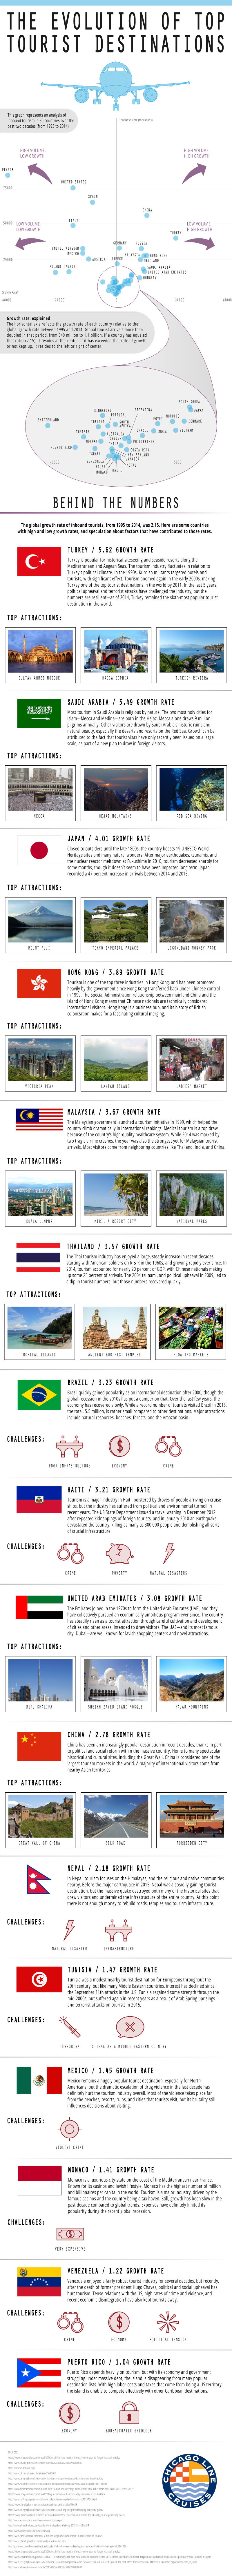 The Evolution of Top Tourist Destinations